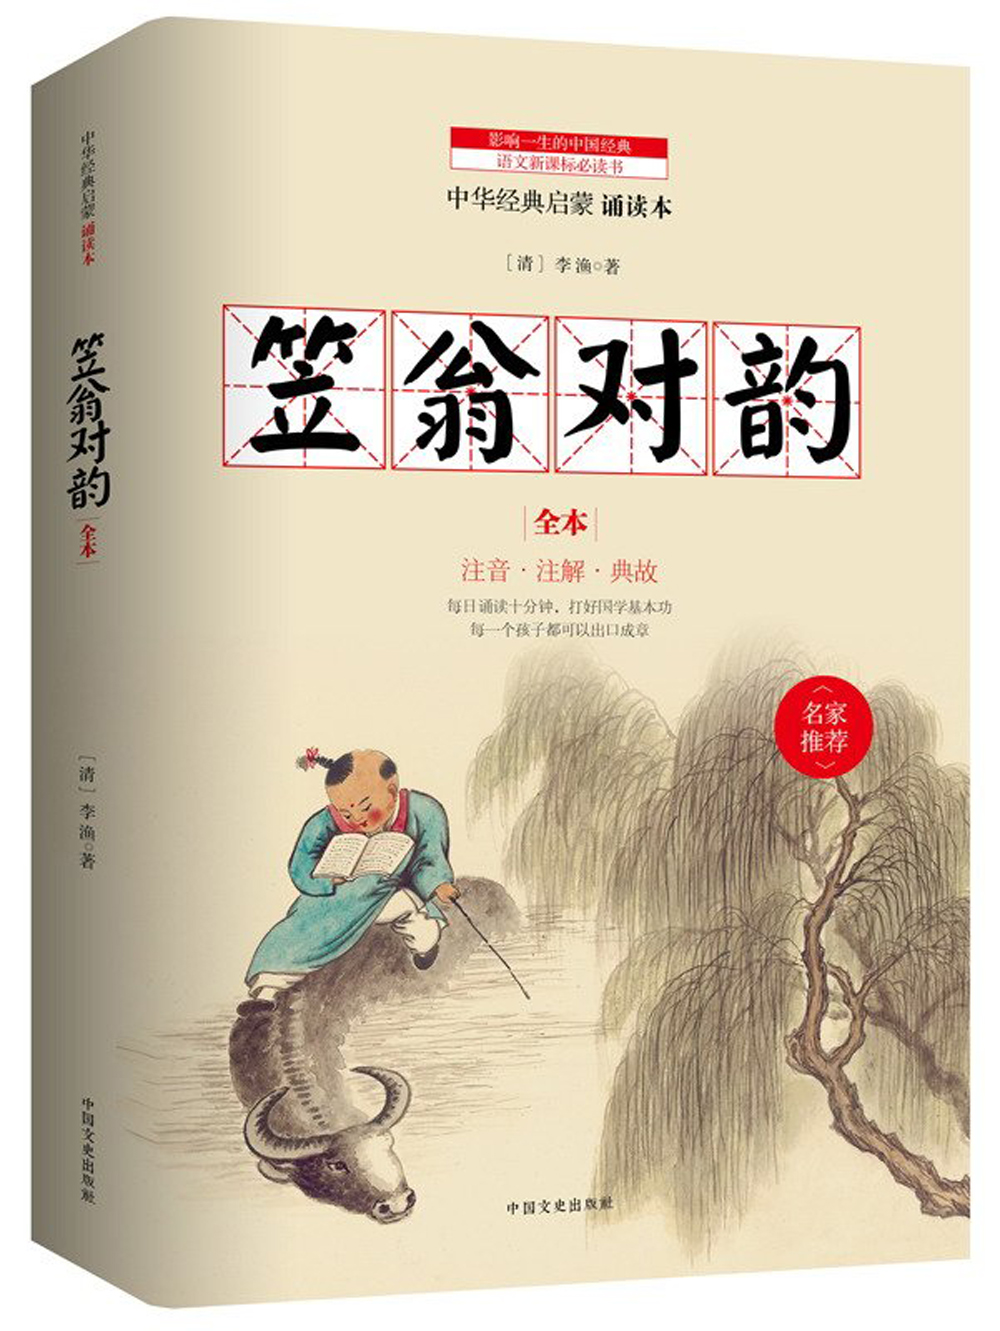 Chinese Classics Enlightenment Reading Book For Beginners :Recite China Ancient Famous Works With Pin Yin:liwenduiyun